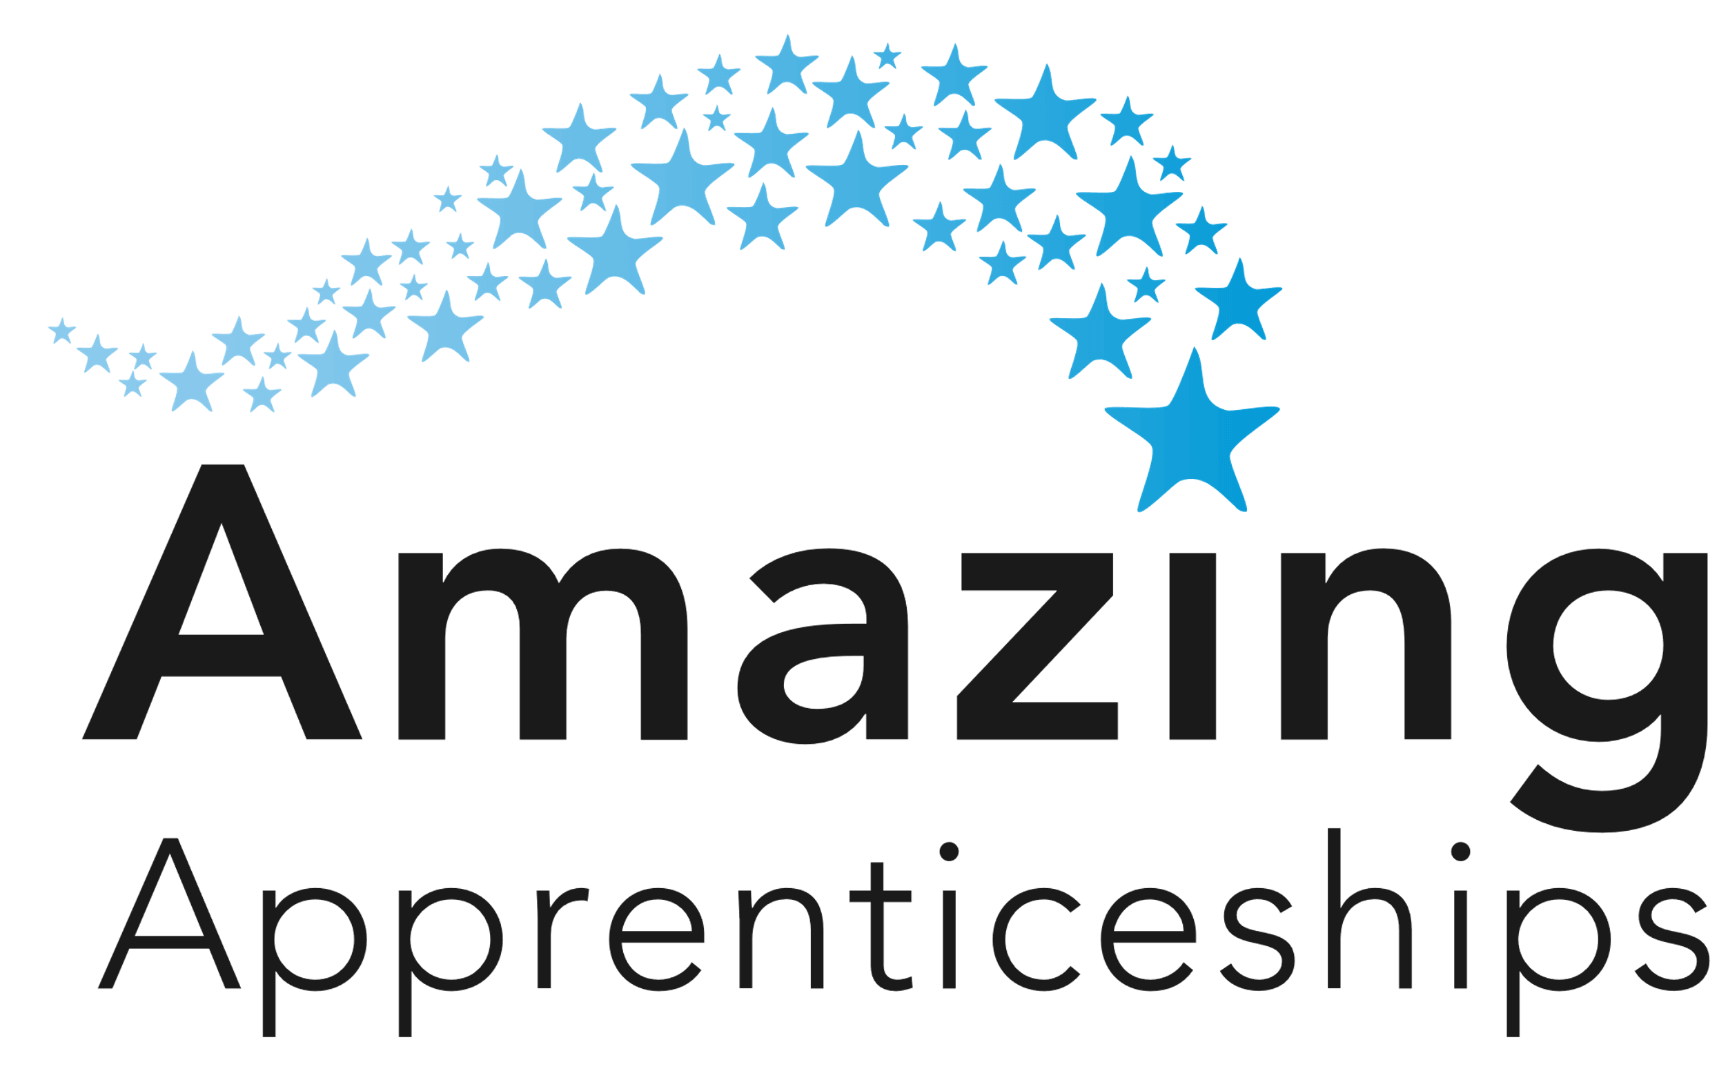 Aspire Learning and Development | Aspire | Amazing Apprenticeships Logo | Government Funded Learning